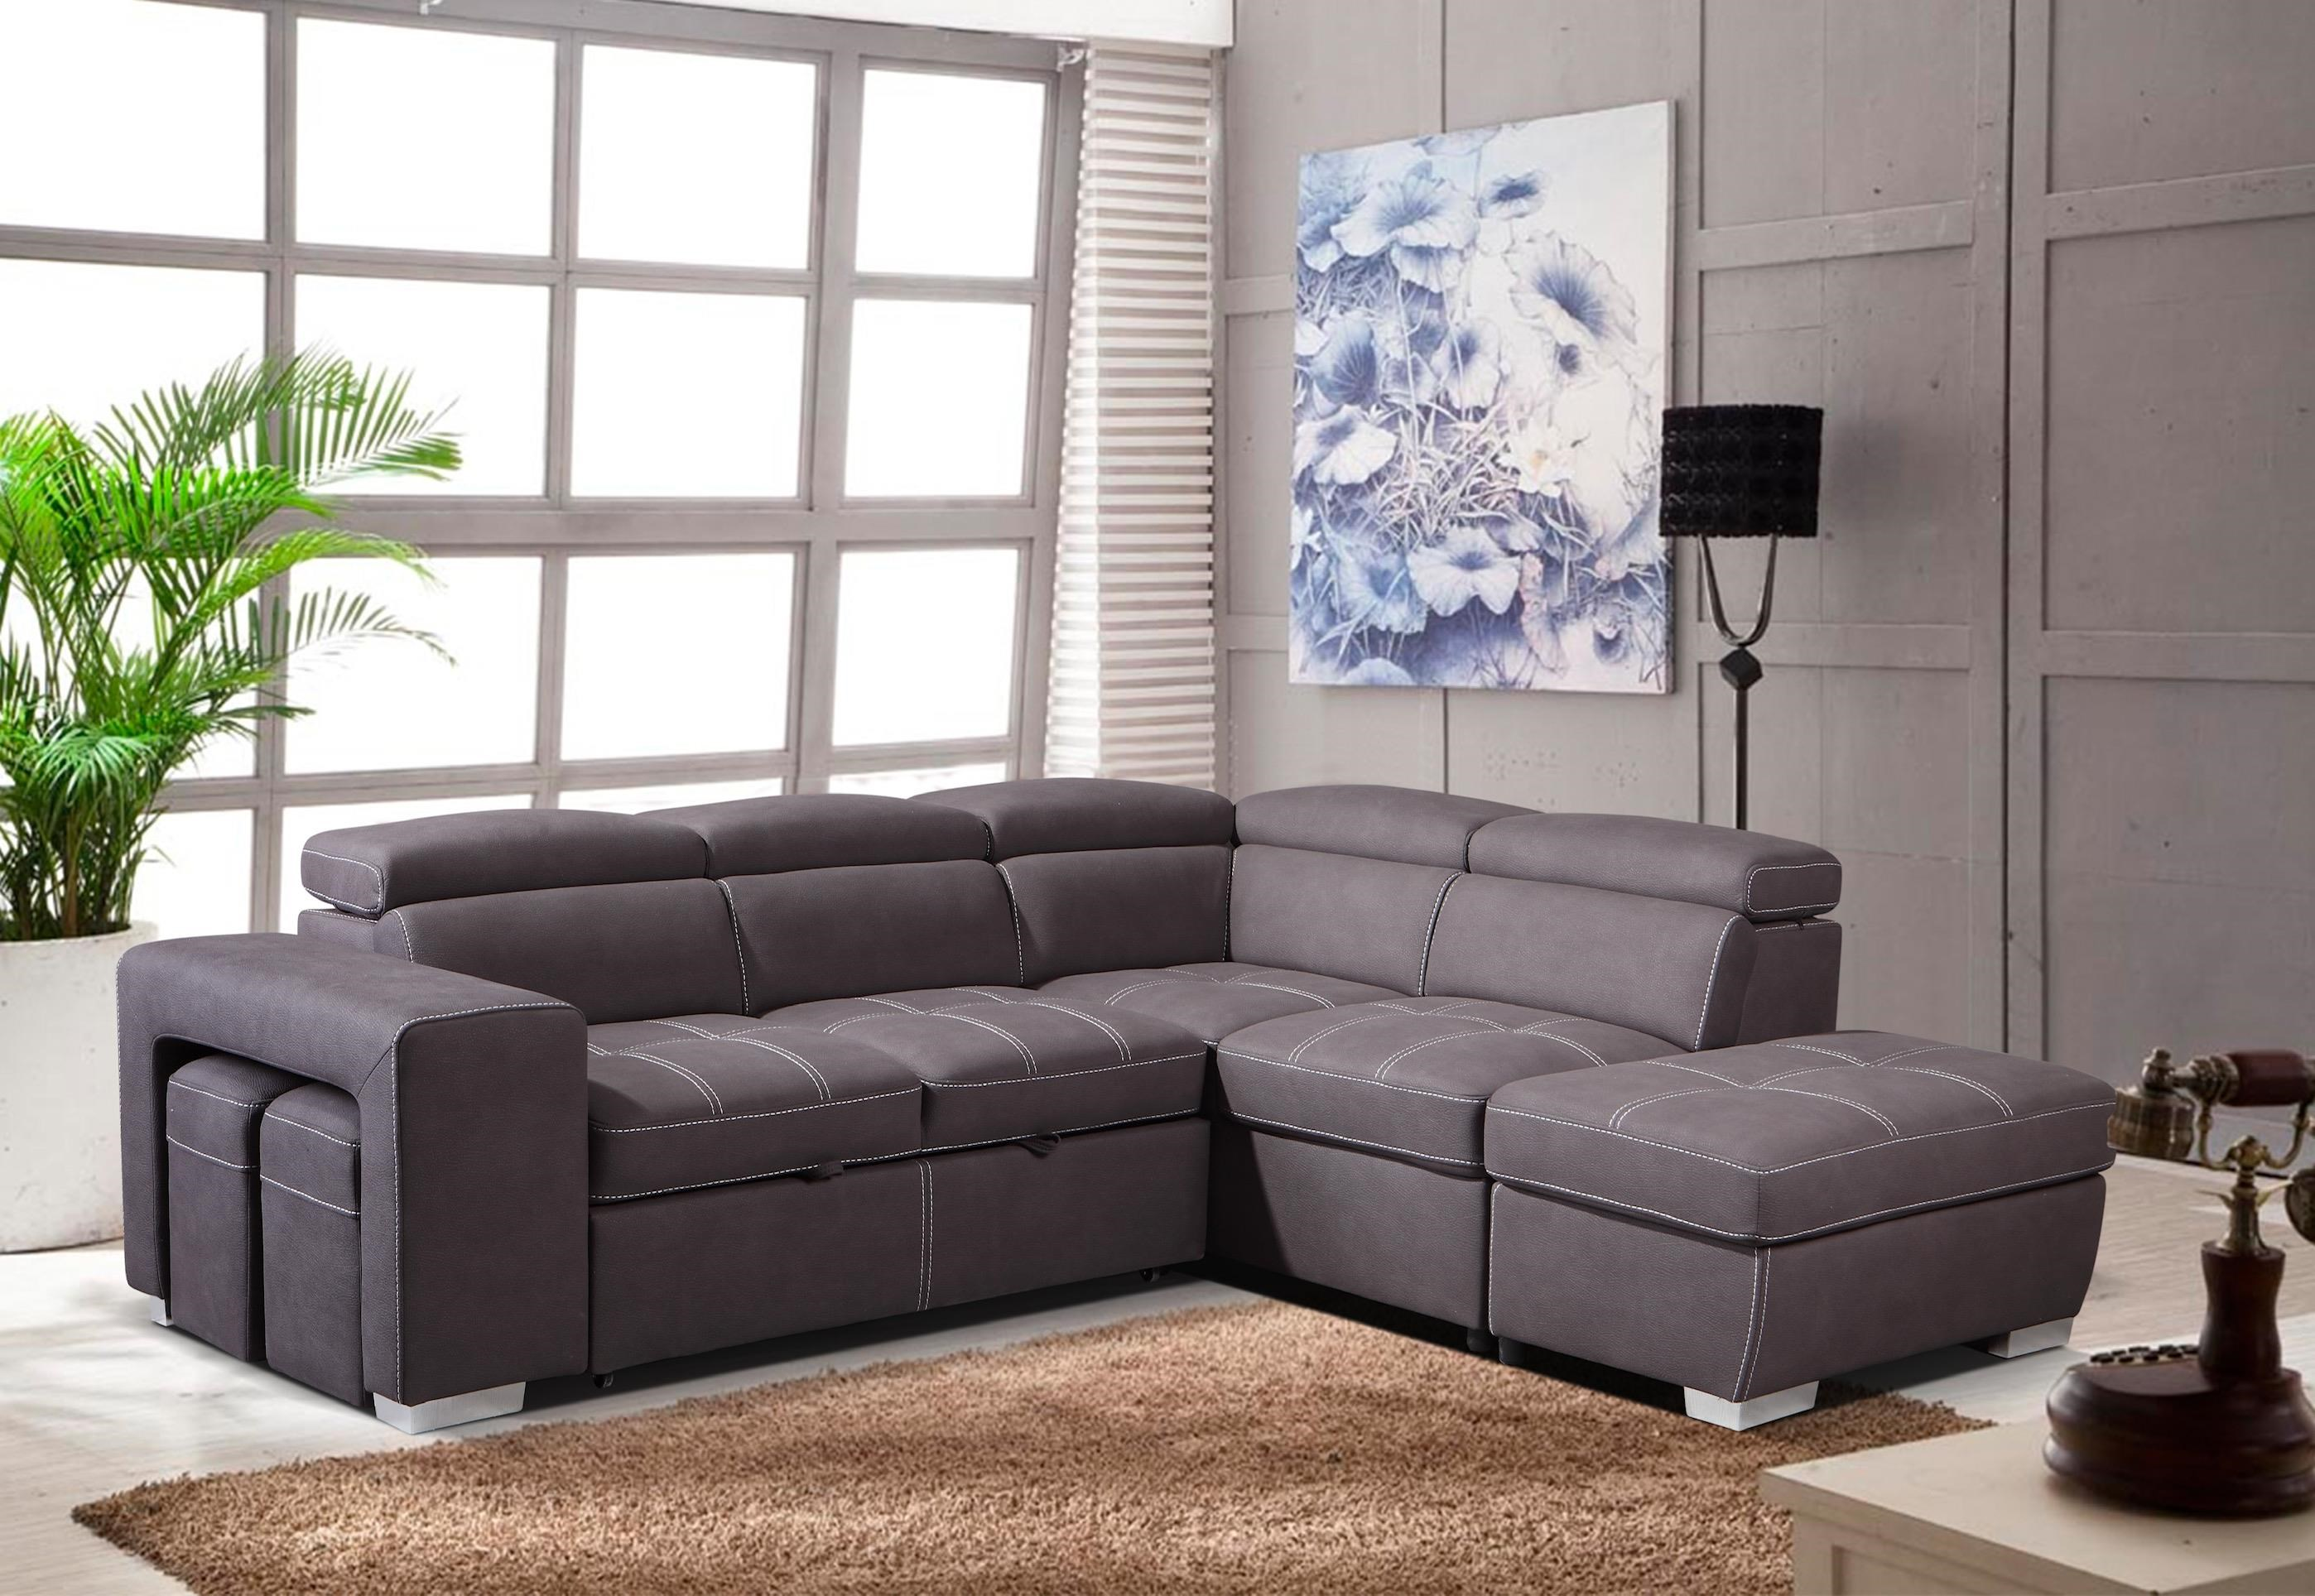 Positano Sectional by Amalfi Home Furniture at Red Knot